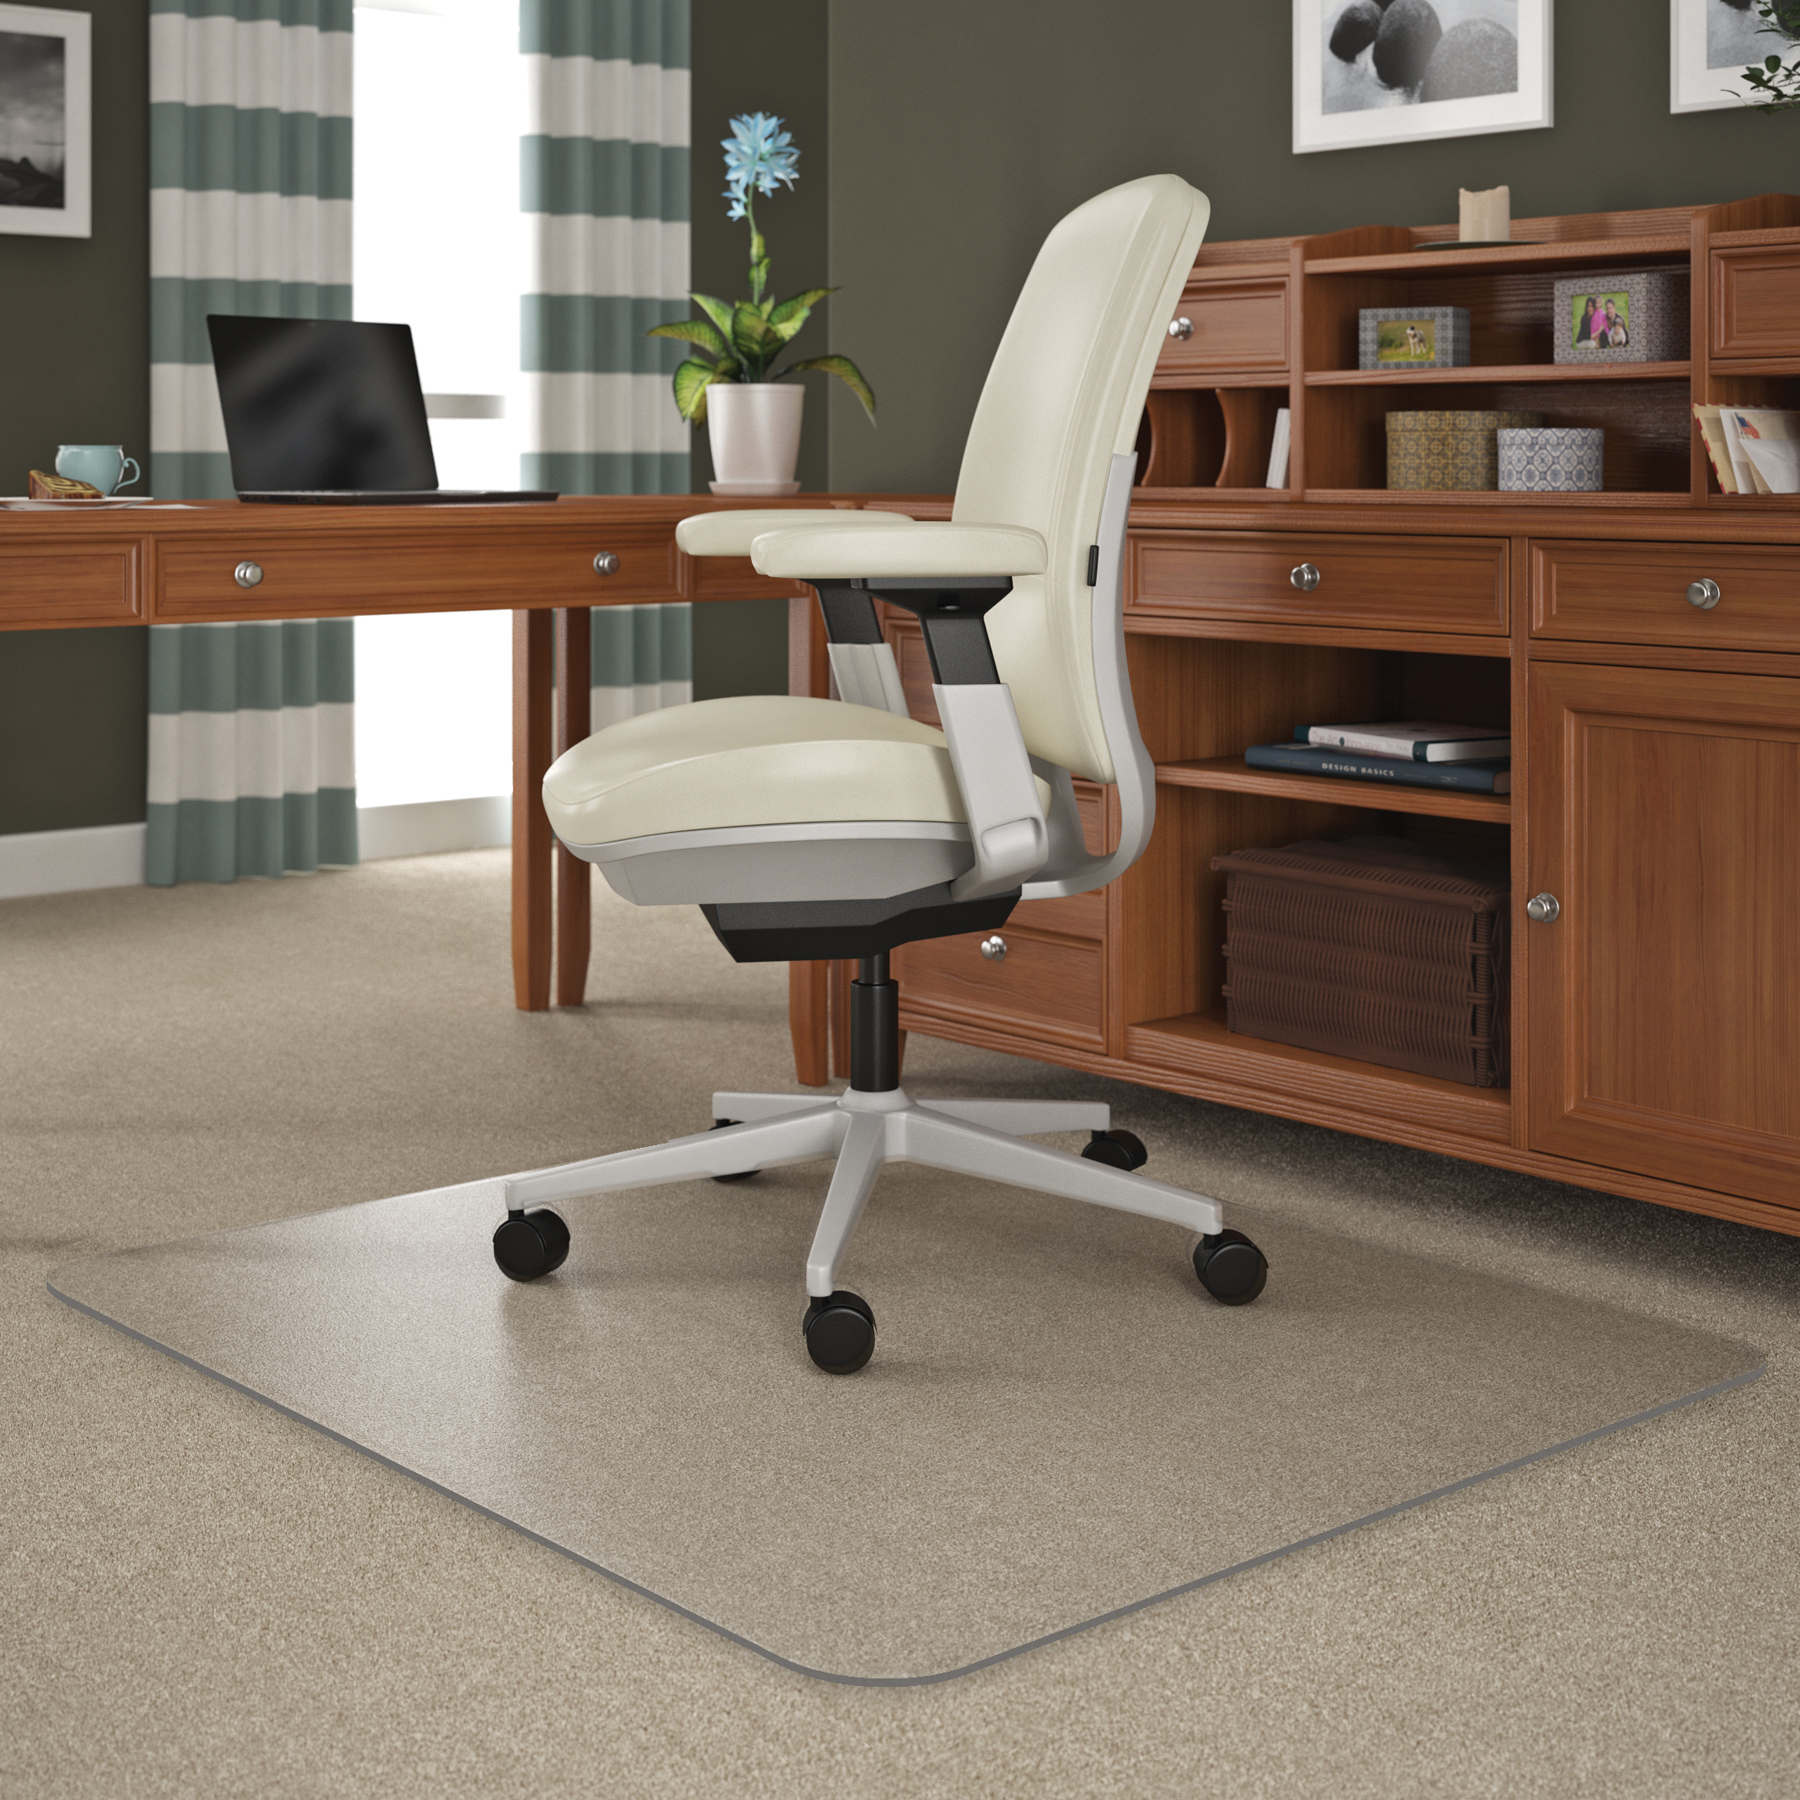 floor home hardwood full hard rolling plastic of surface mats size chairs chair for rug mat office design floors desk small